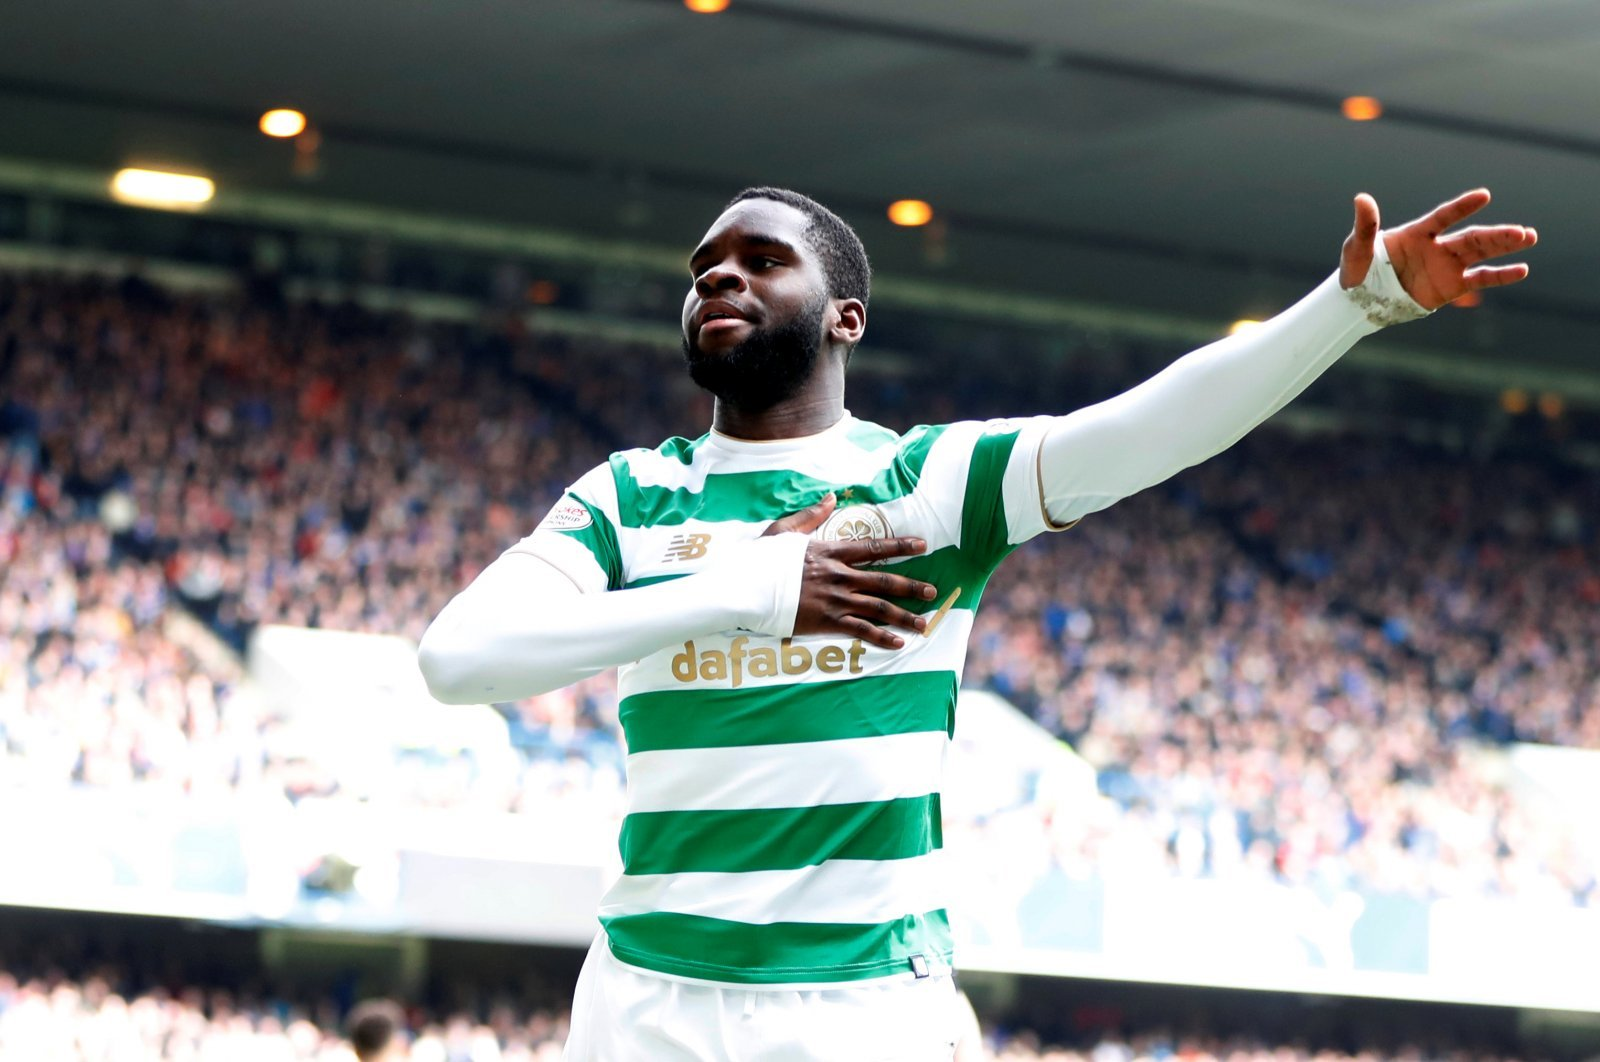 Celtic: Fans react to Odsonne Edouard's double on international debut